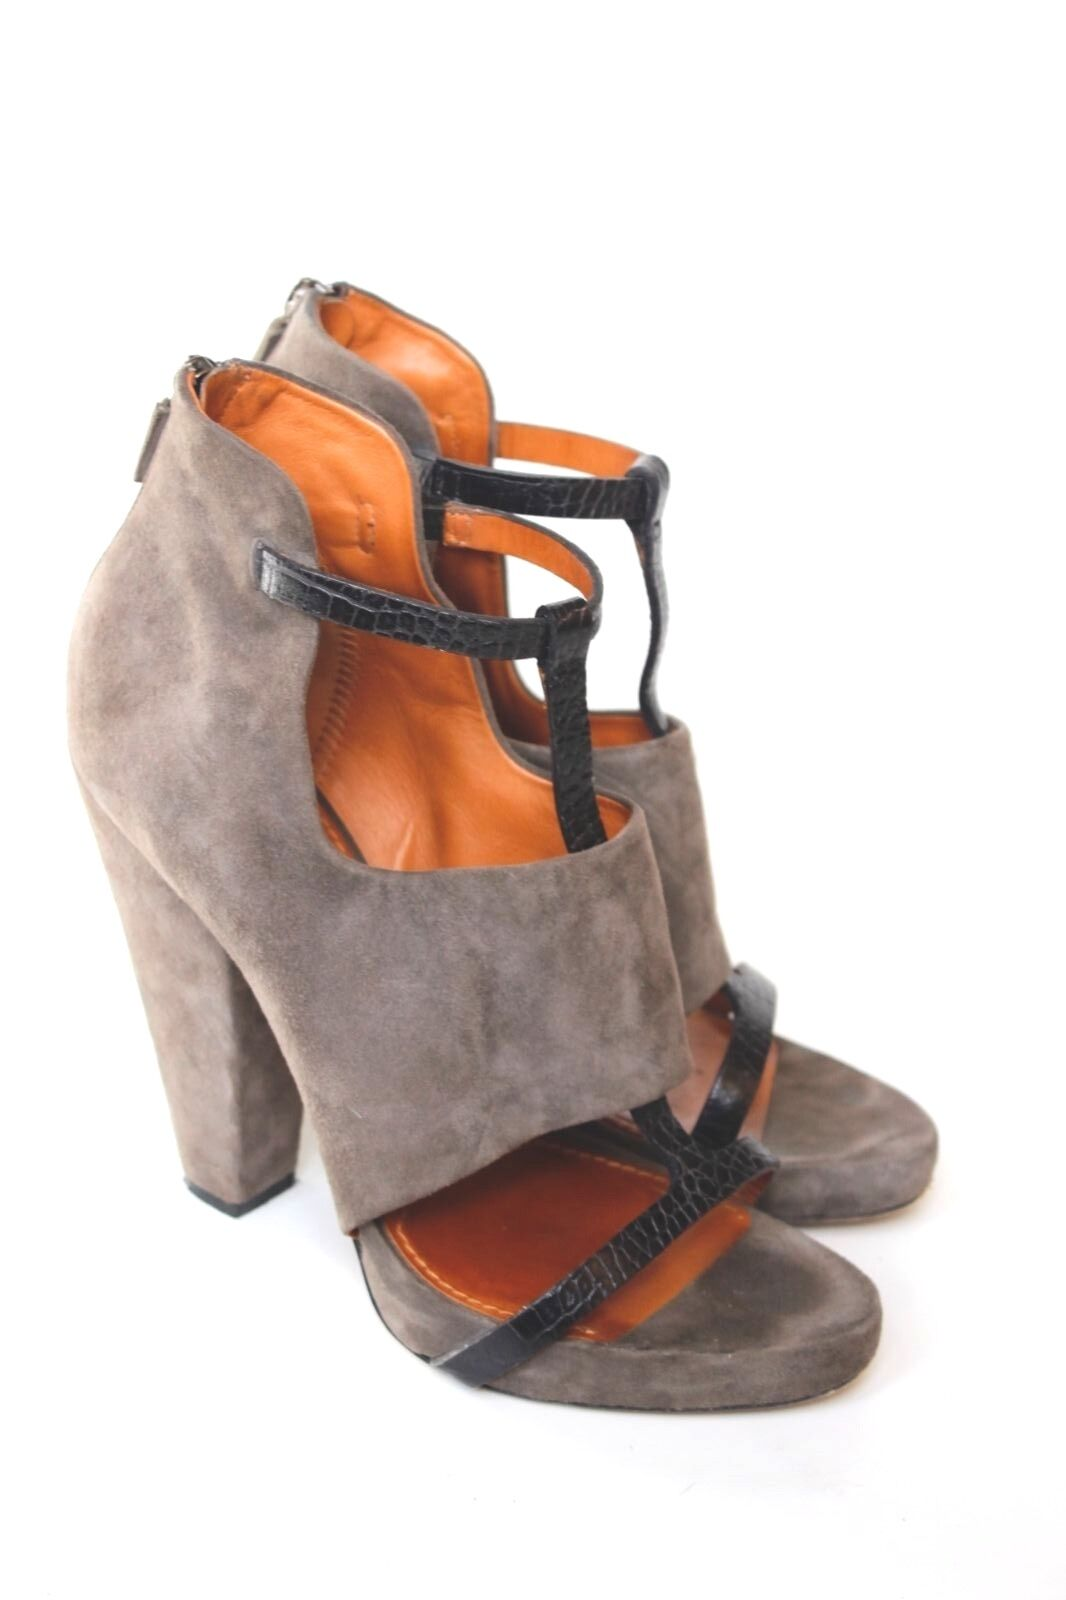 Givenchy Out Taupe Grey Suede Leather T Bar Cut Out Givenchy Boots 40 uk 7 58c205